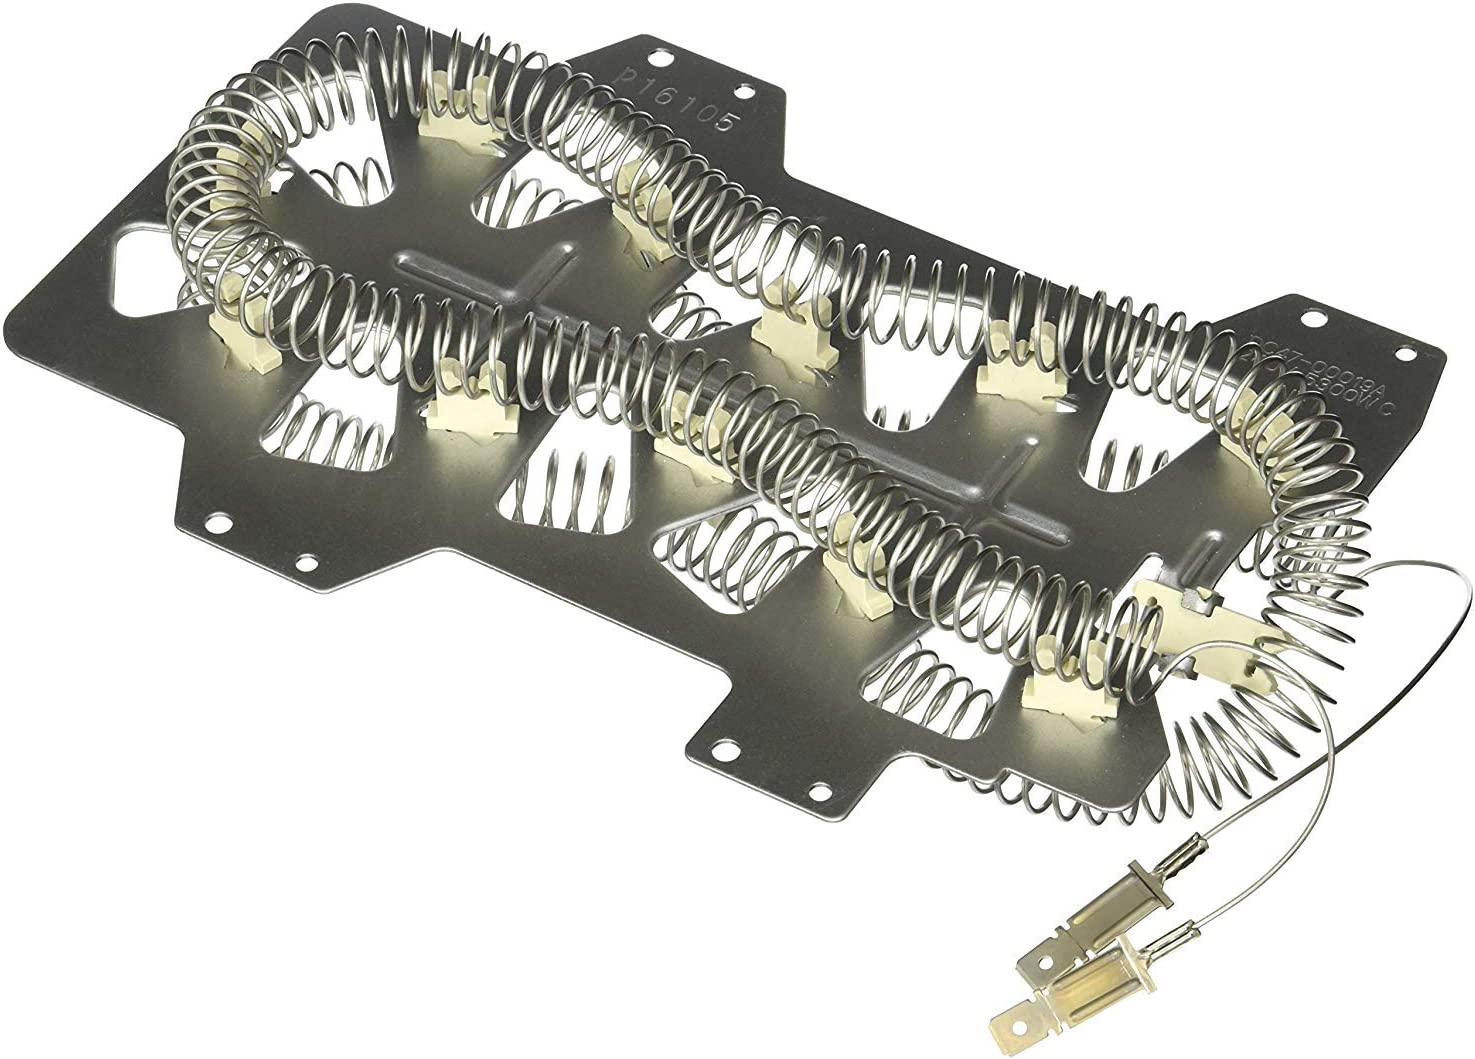 AUKO DC47-00019A Dryer Heat Element Replacement for Samsung DC47-00019A and Whirlpool 35001247